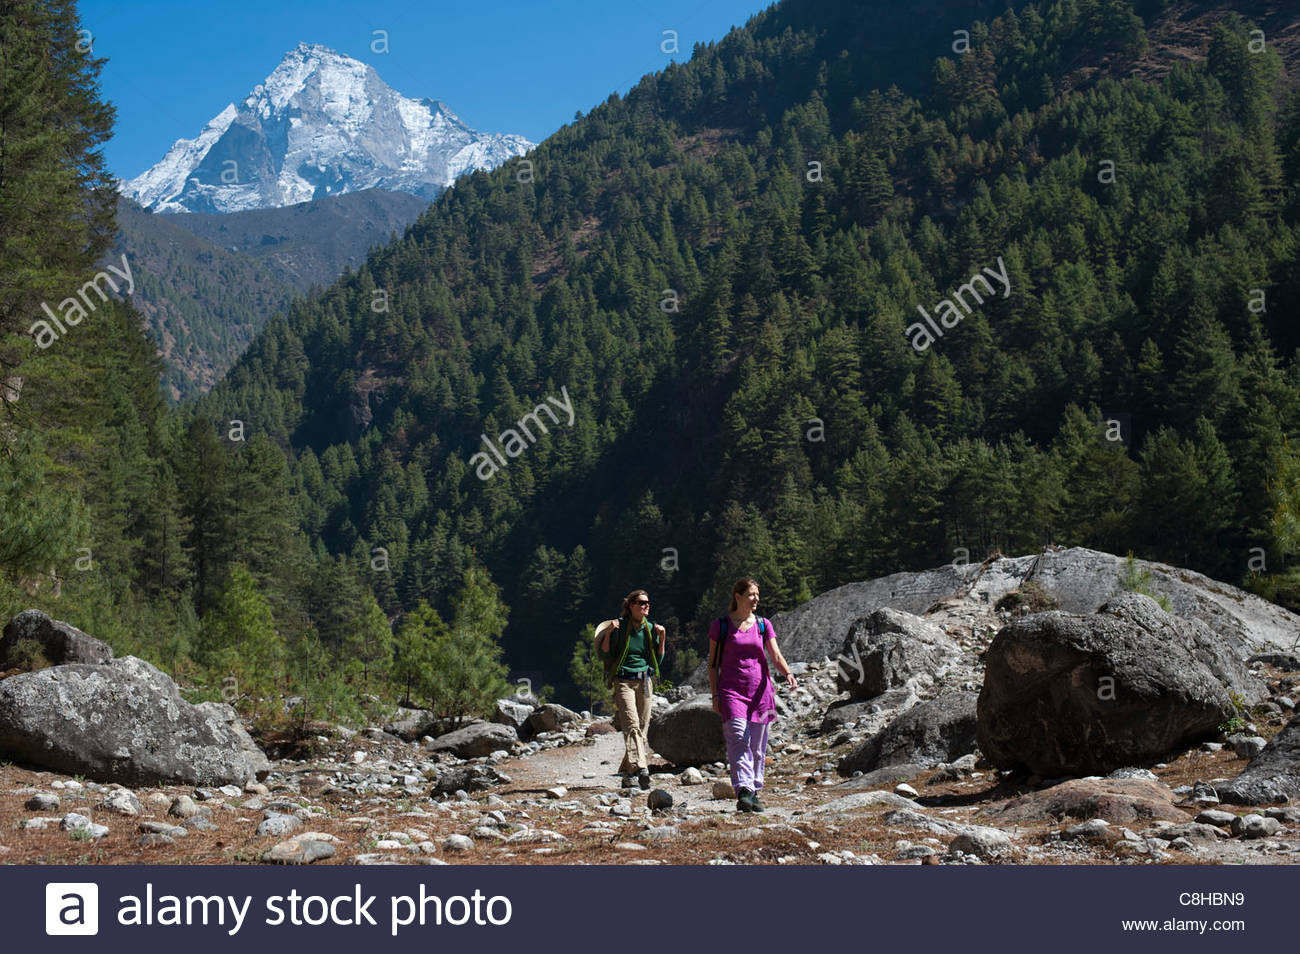 Trekkers on their way to Everest base camp - Stock Image